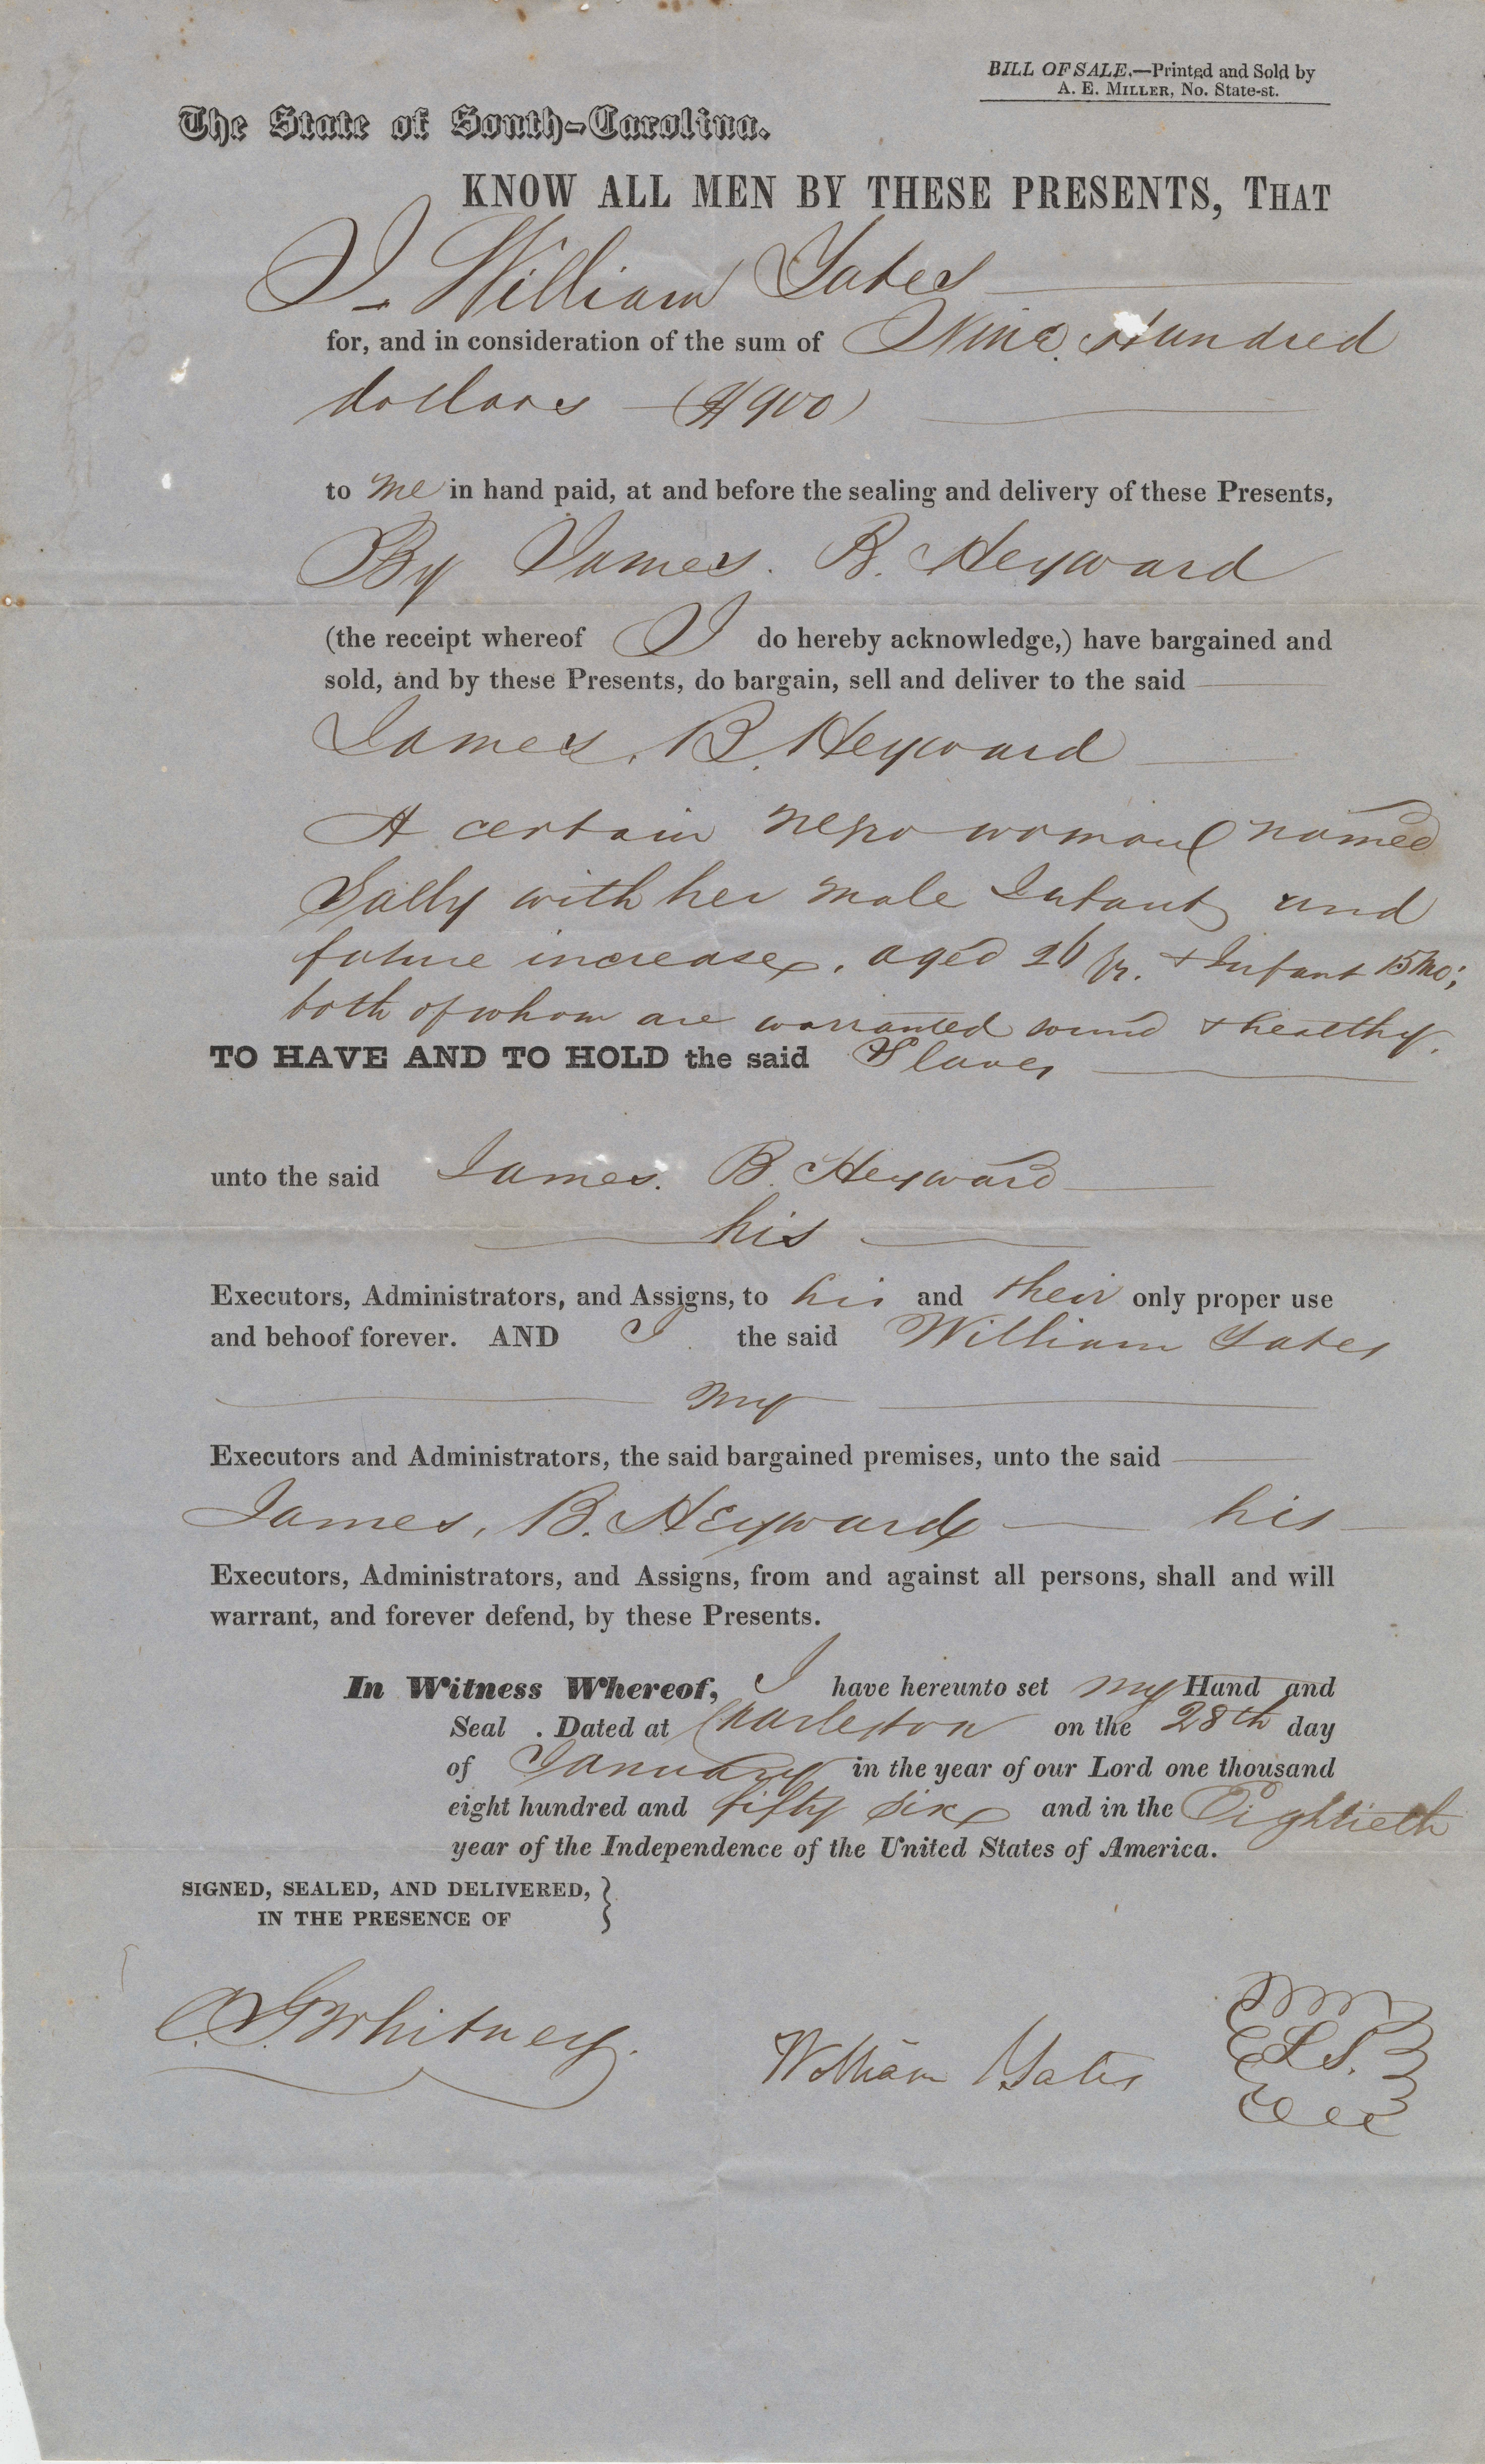 147. Bill of Sale for Slaves between William Yates and James B. Heyward -- January 28, 1856